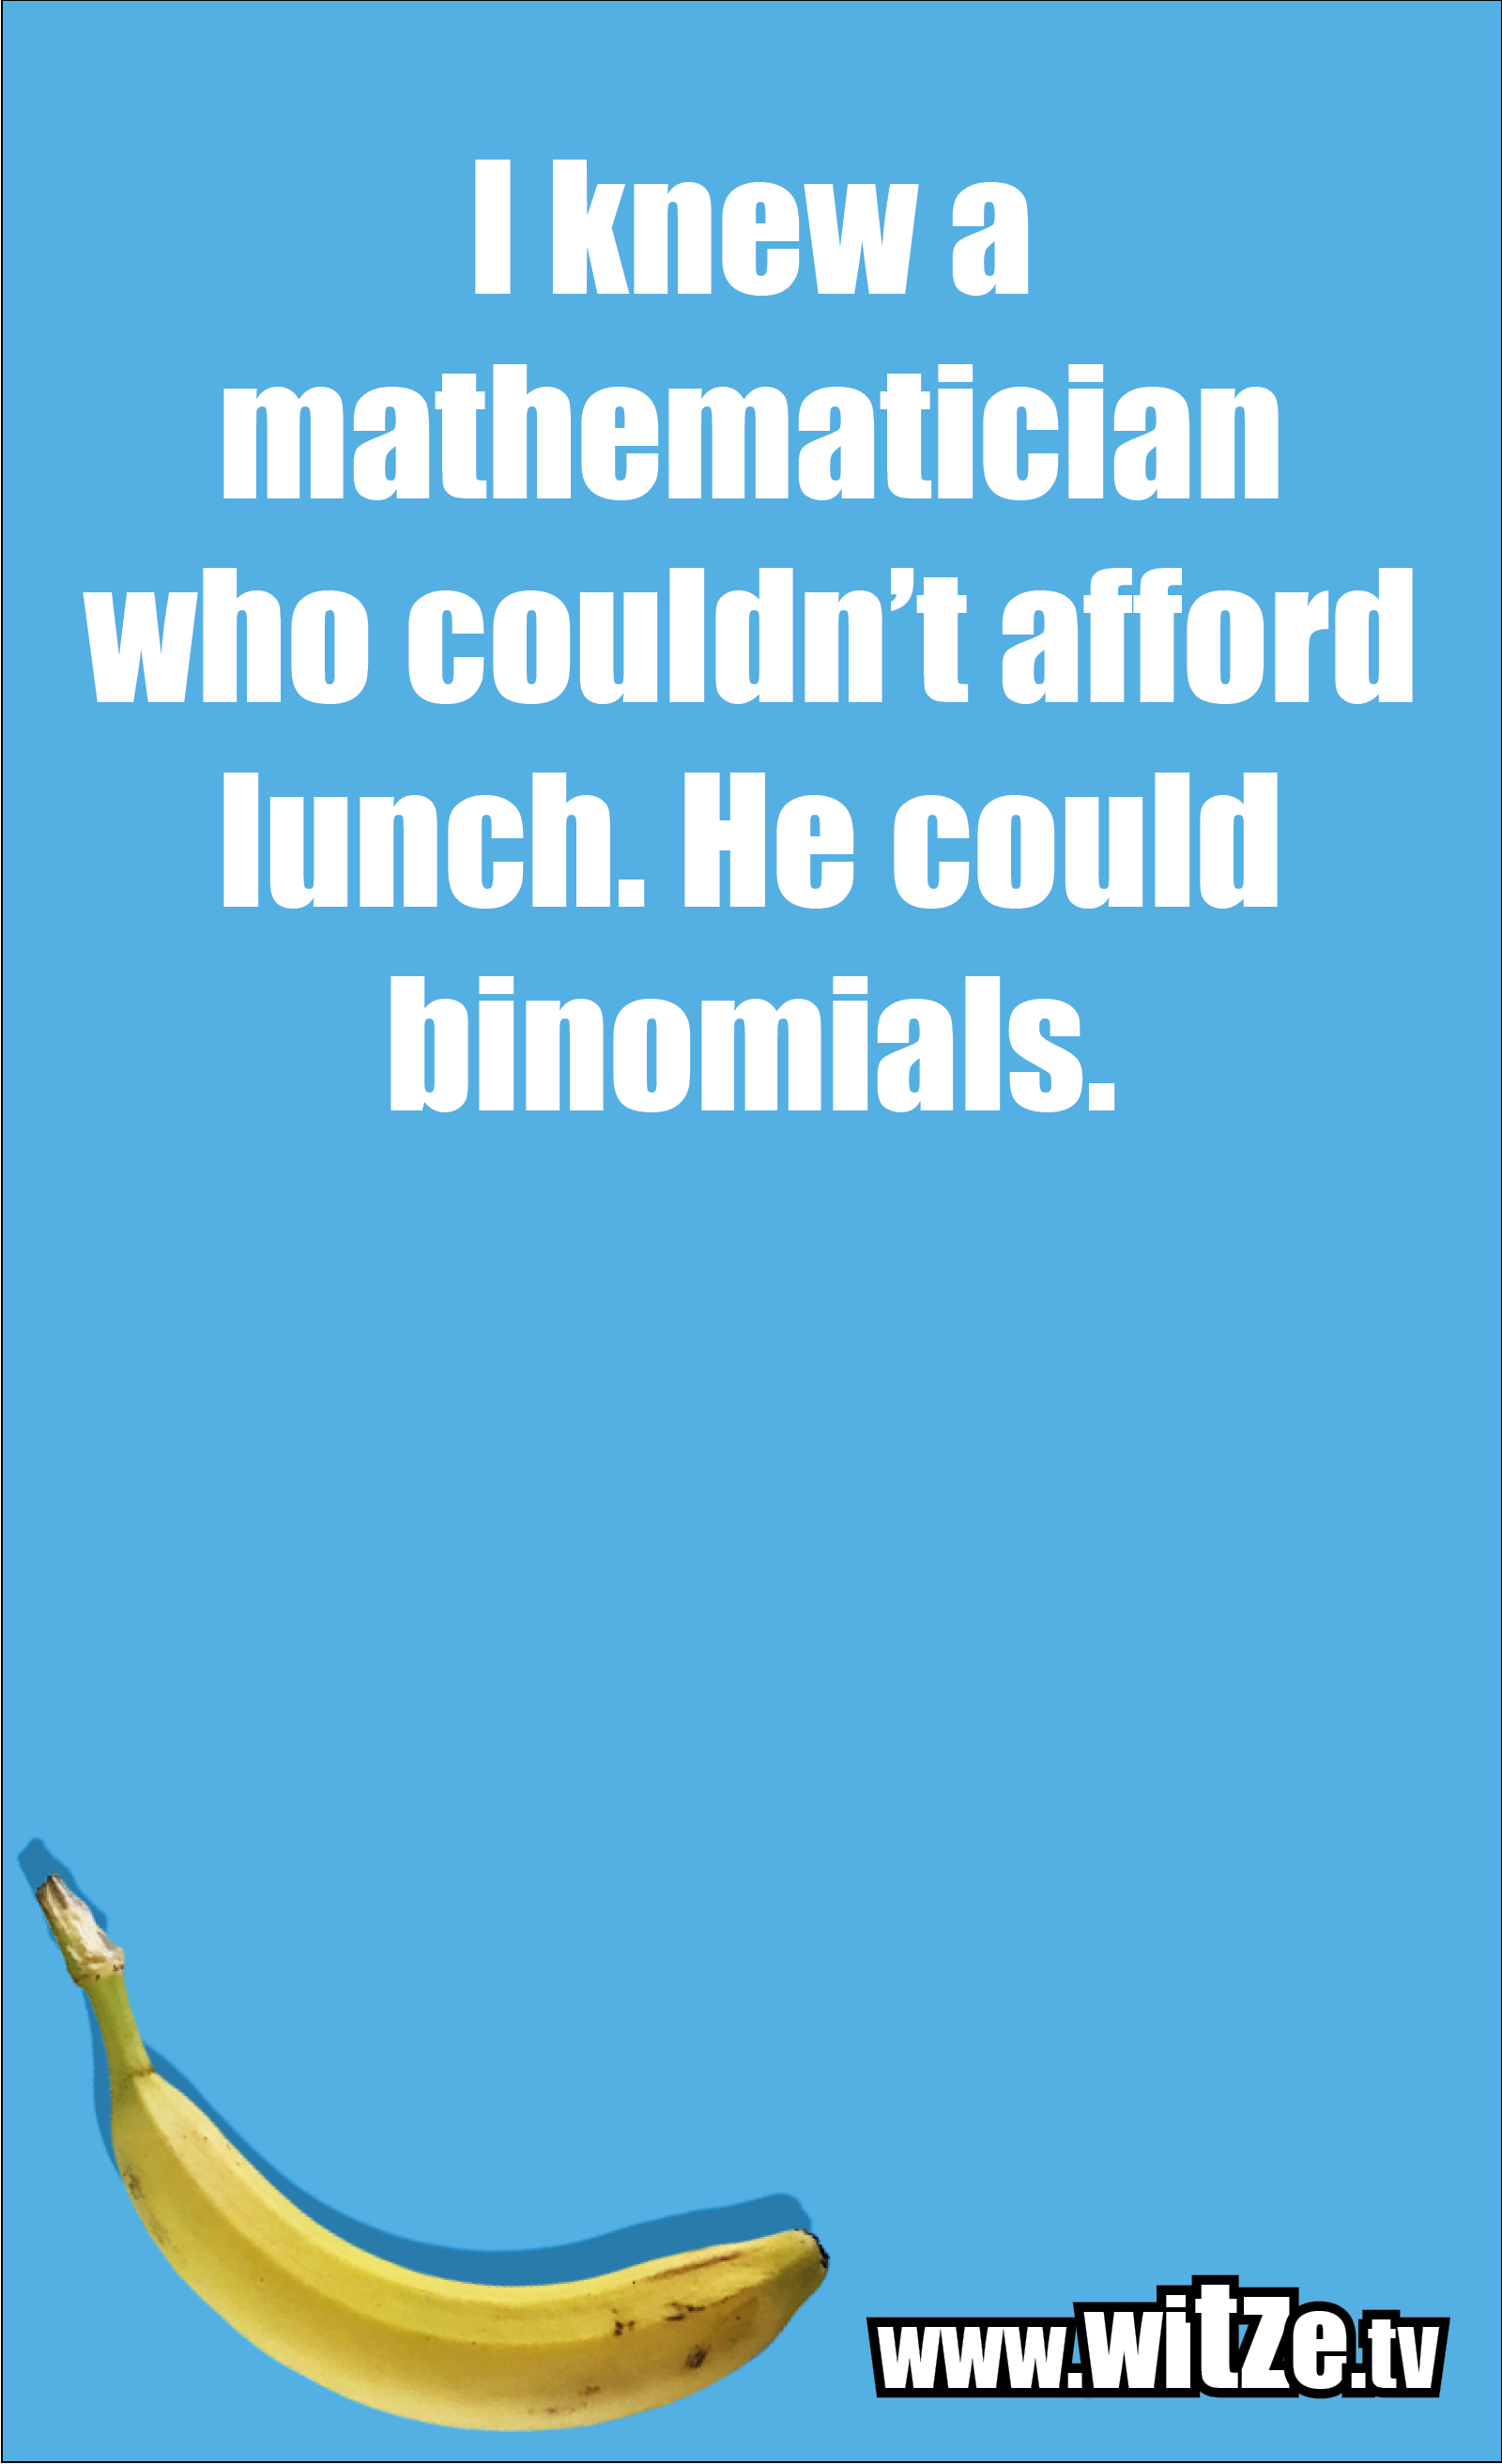 Math joke… I knew a mathematician who couldn't afford lunch. He could binomials.